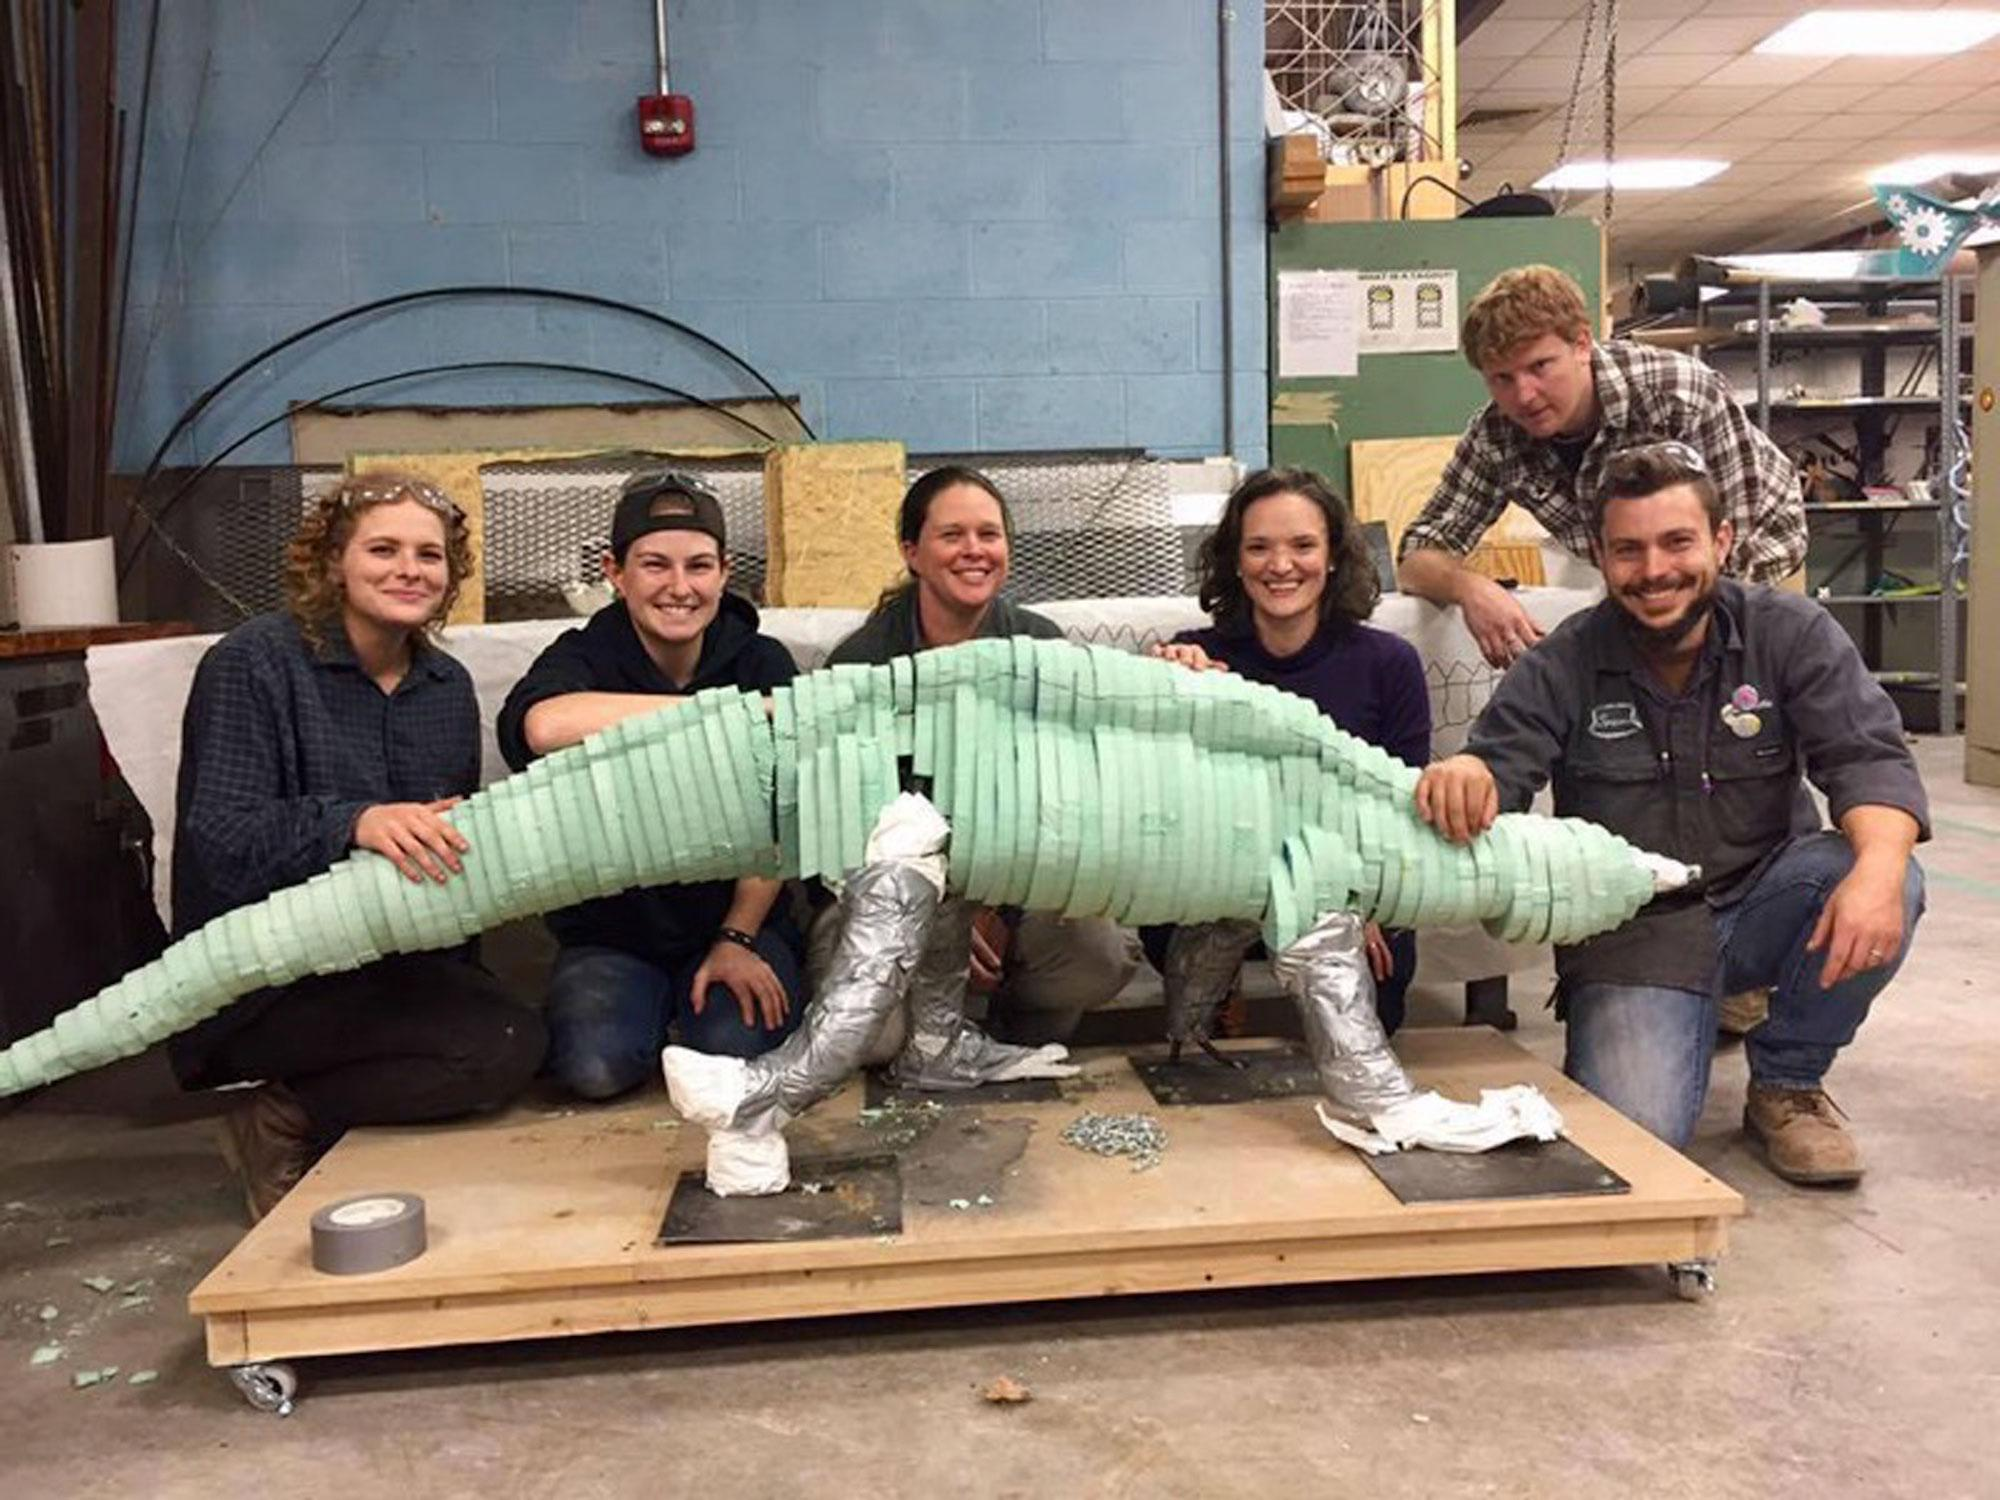 The+students+of+the+Intermediate+Advanced+Sculpting+Class+lead+by+Travis+Donovan+created+this+dinosaur+sculpture.